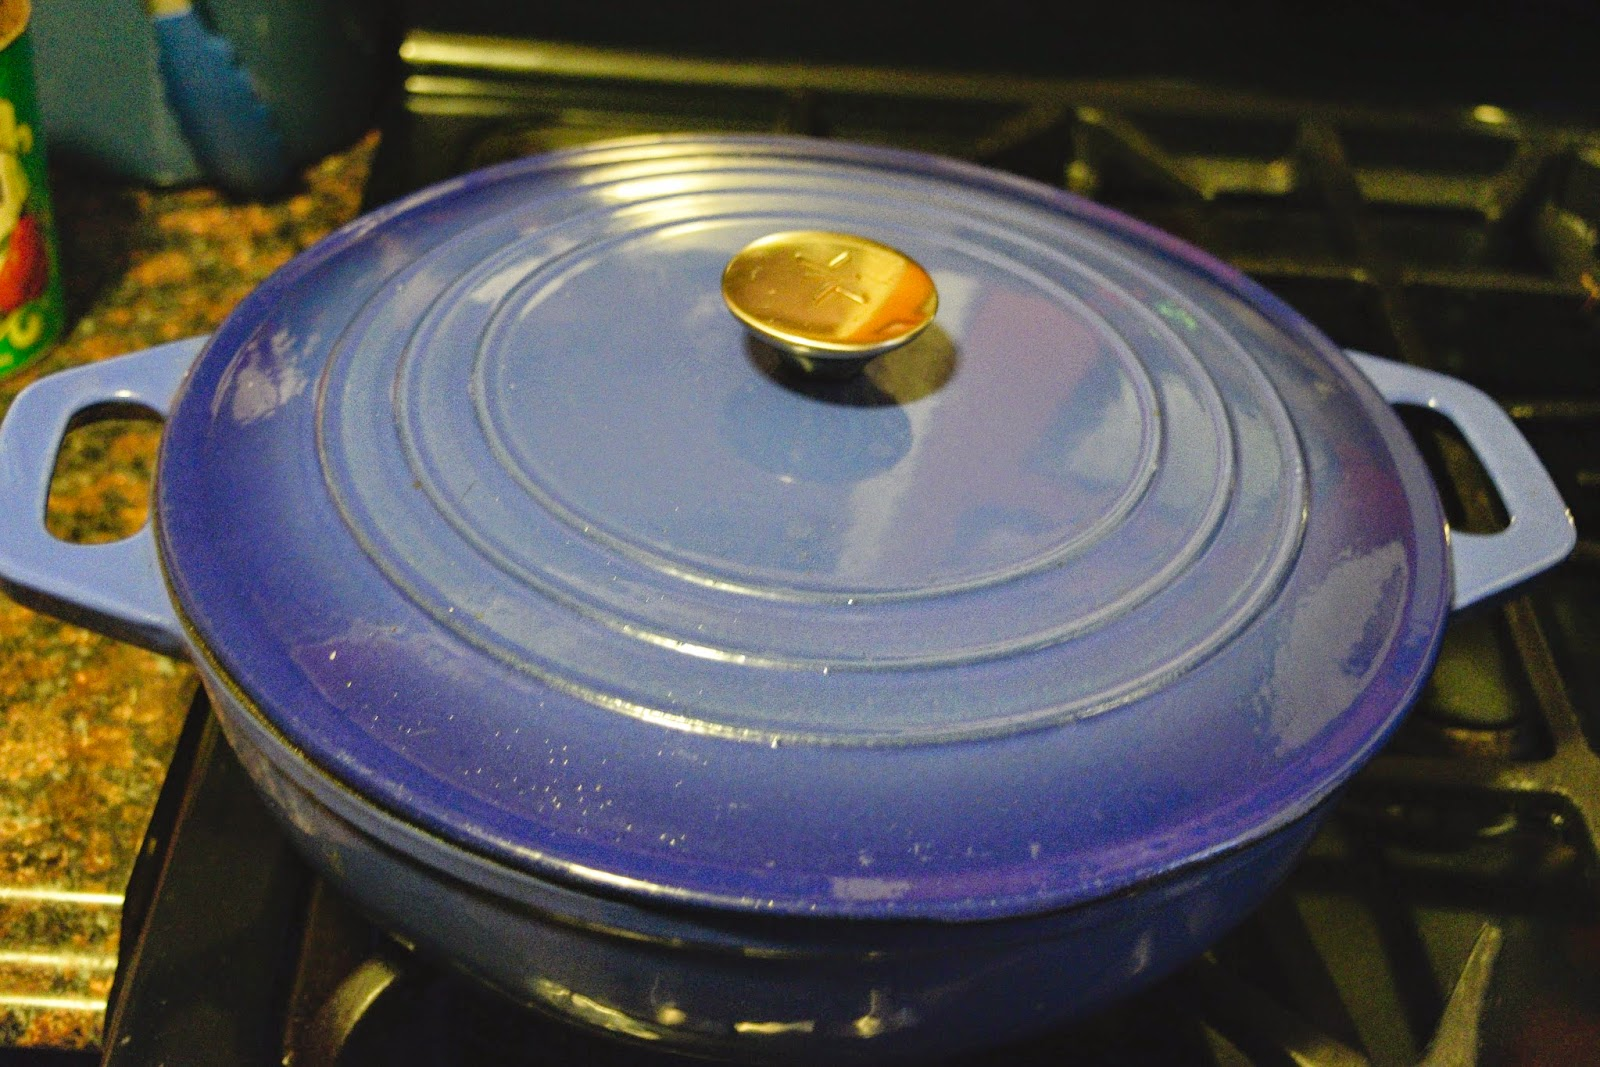 The sauce pot, with the lid on it, over medium/low heat.